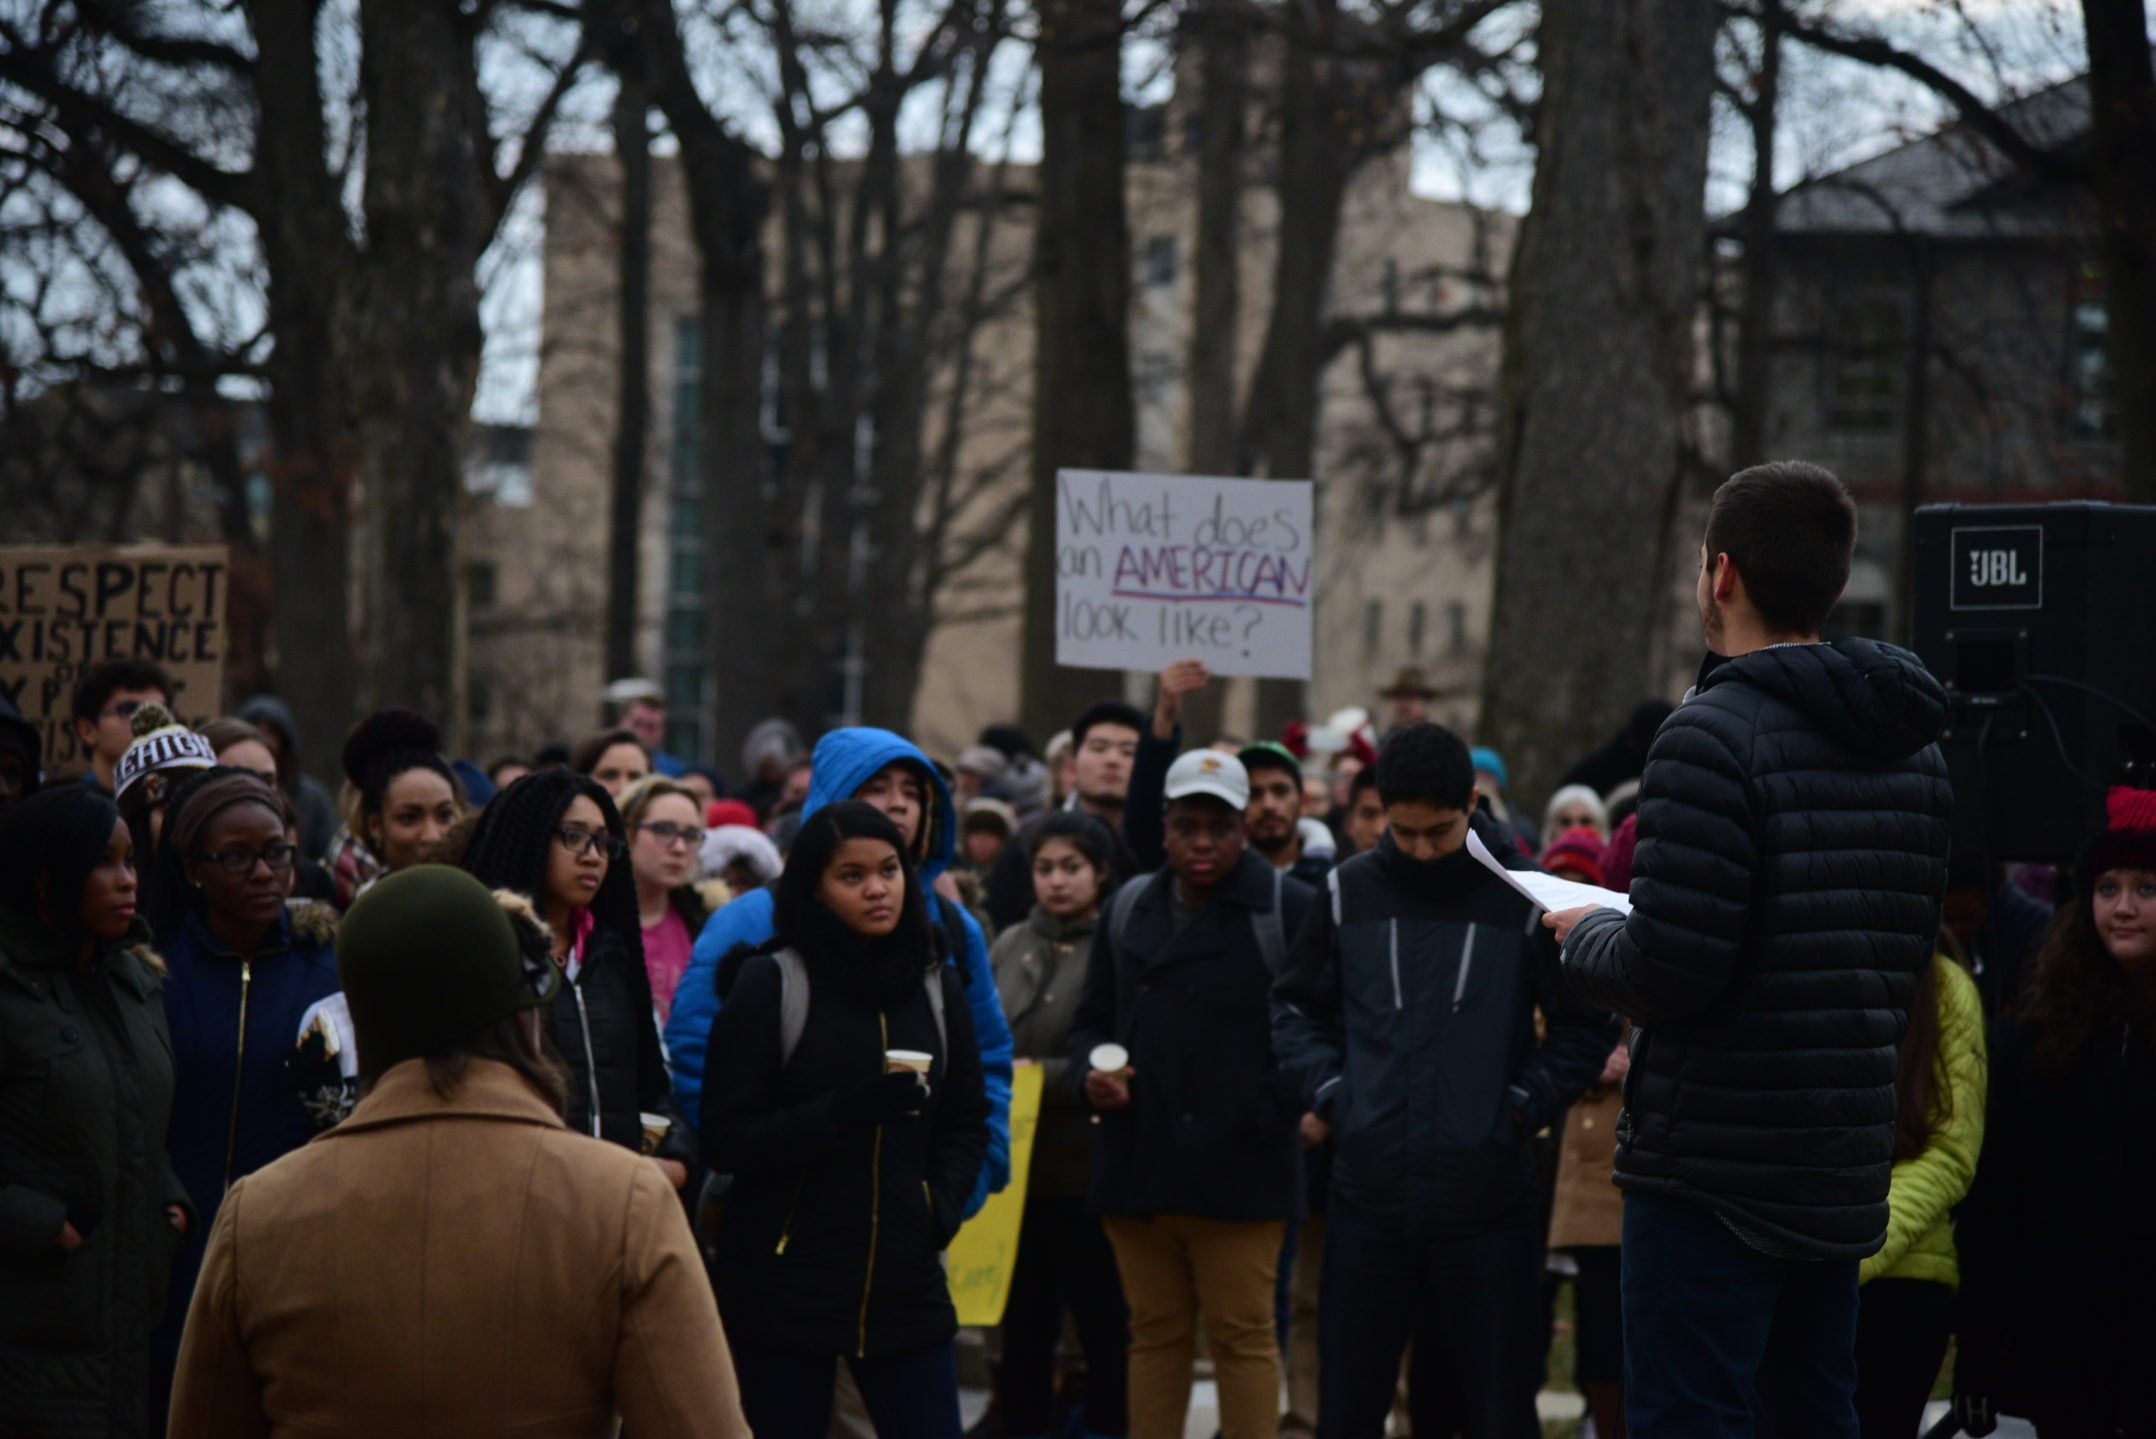 Members of the Lehigh community gather at the flagpole for a rally of solidarity. Juan Palacio Moreno talks to the crowd at the rally about his experiences as an immigrant. (Ashley Omoma/B&W Staff)